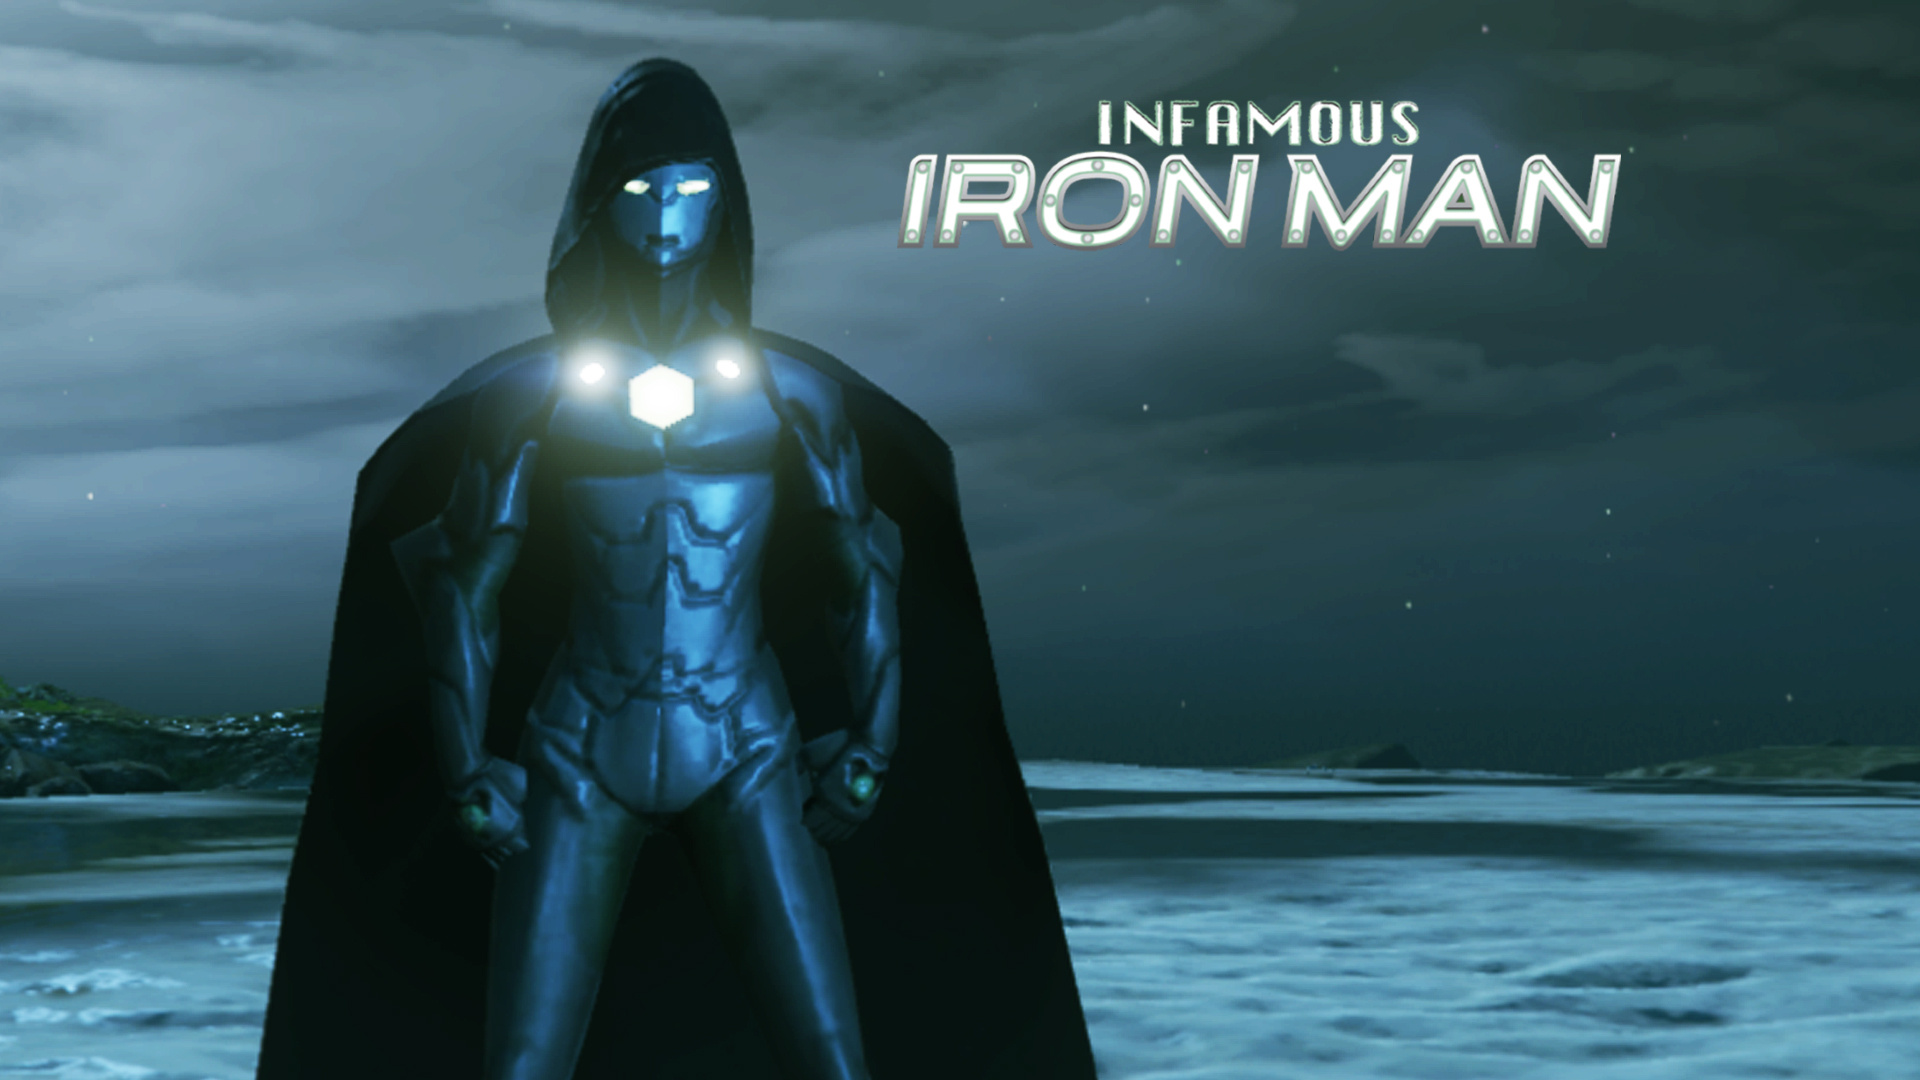 A poster  of Infamous Iron Man